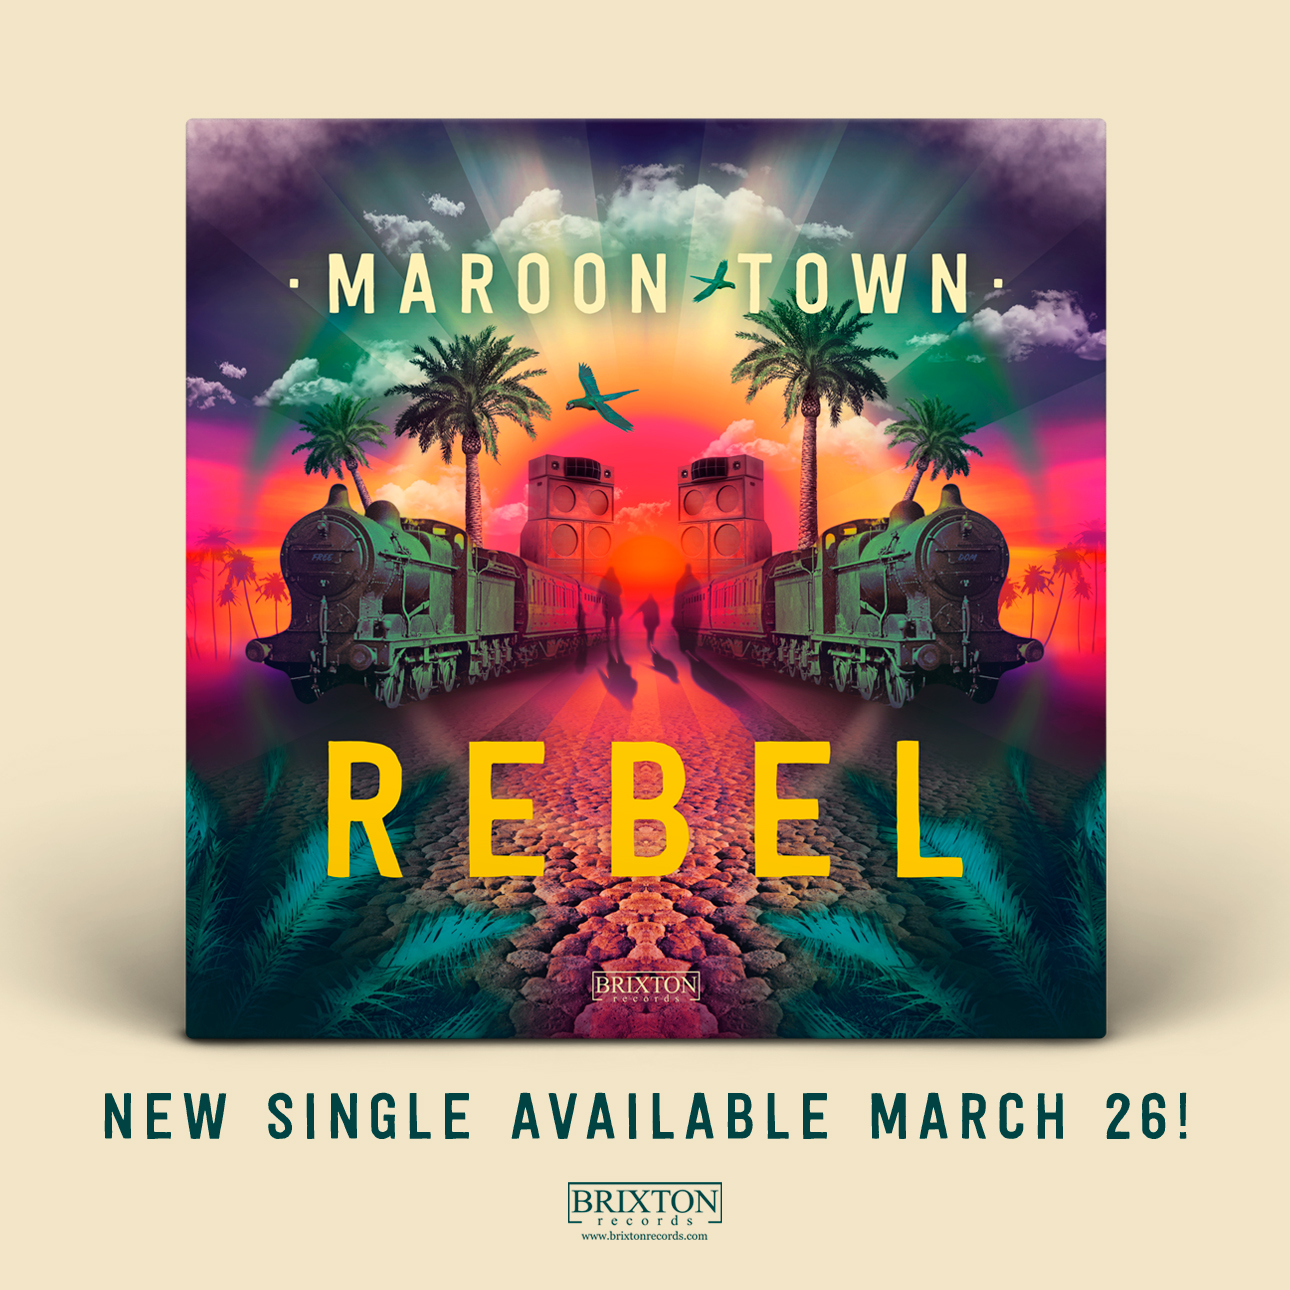 maroon town asian singles Maroon town's first single released on their own label - 'township records' a cover of cannonball adderley's jive samba but.